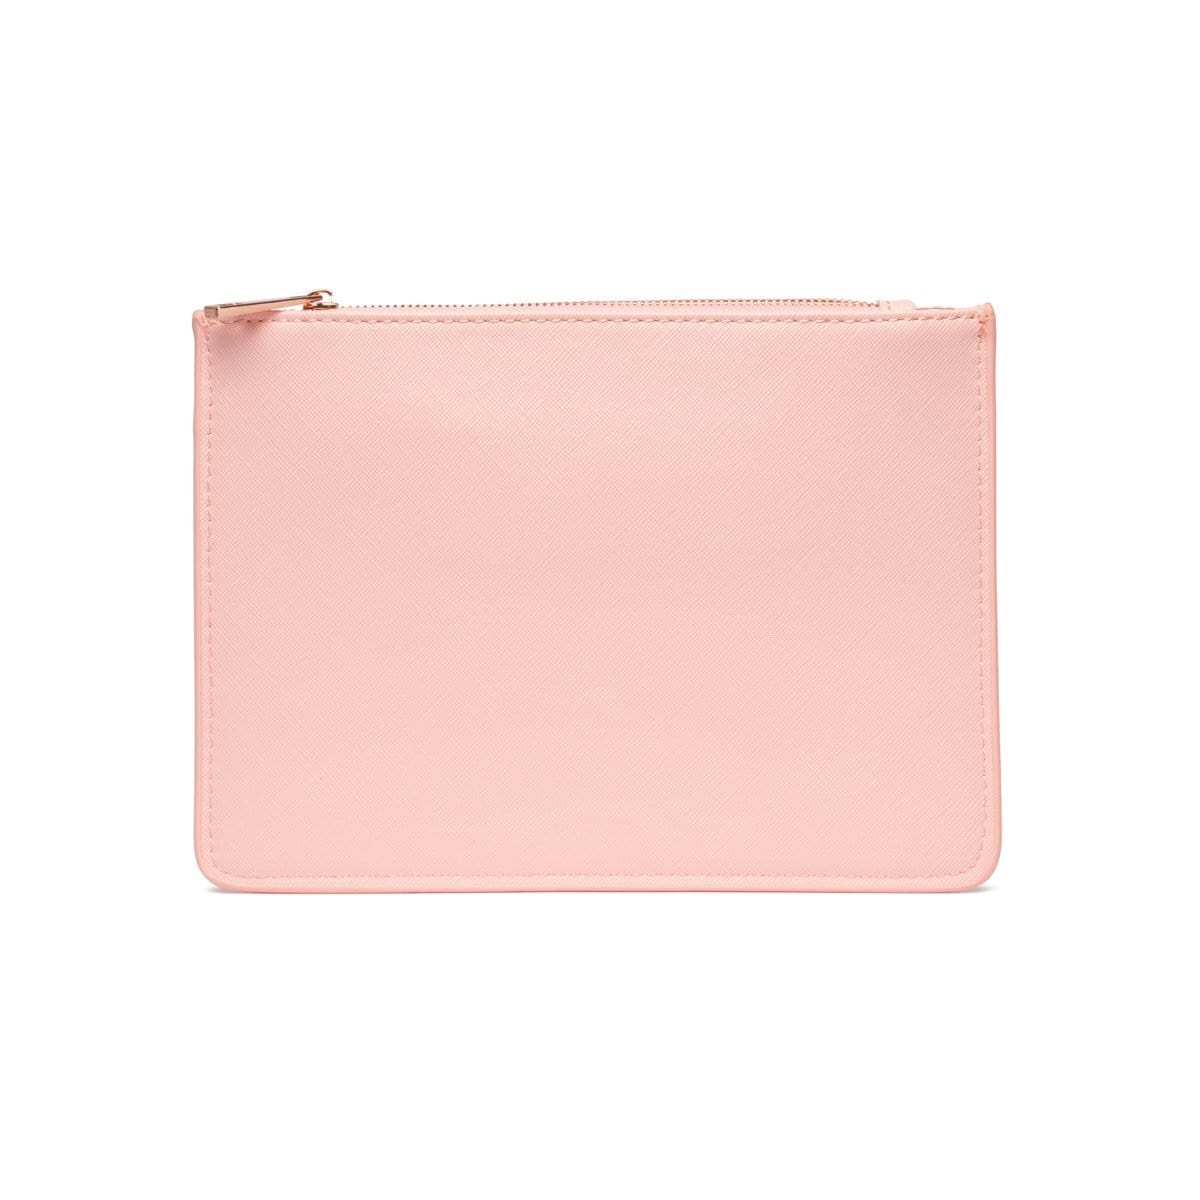 Rose Quartz Sienna Clutch